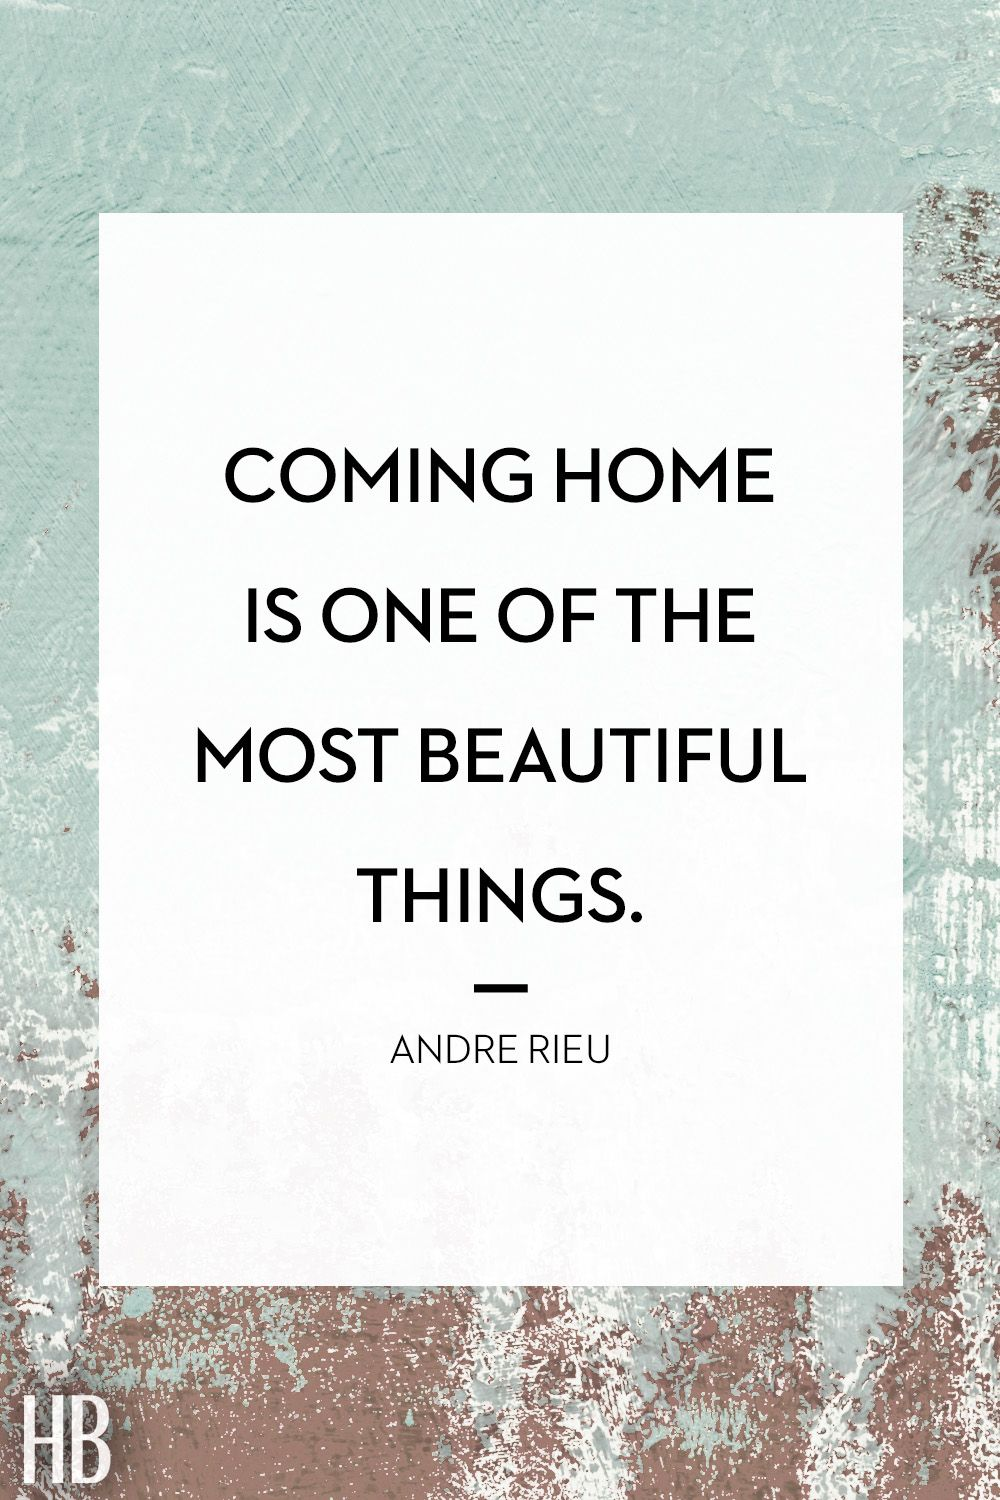 20 Beautiful Quotes - Sayings About Beauty